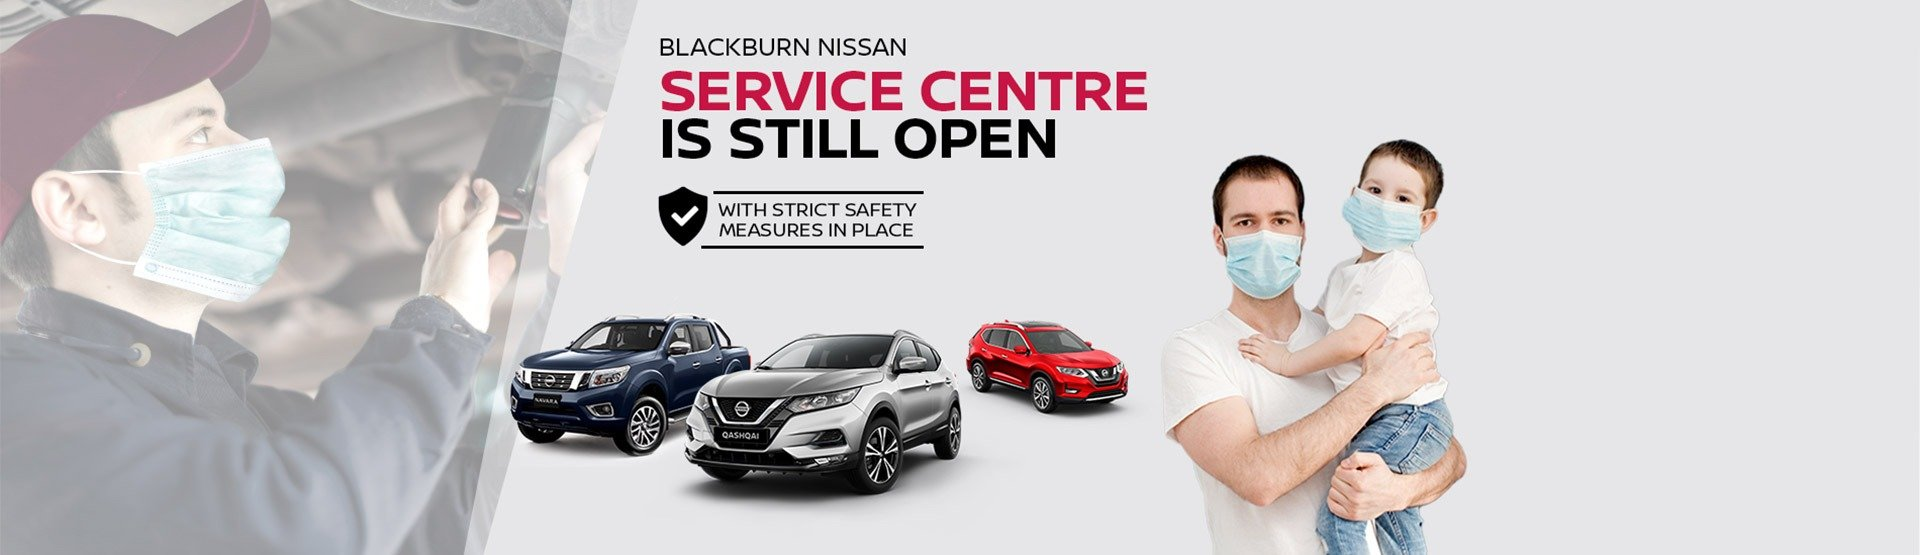 Blackburn Nissan Service still open